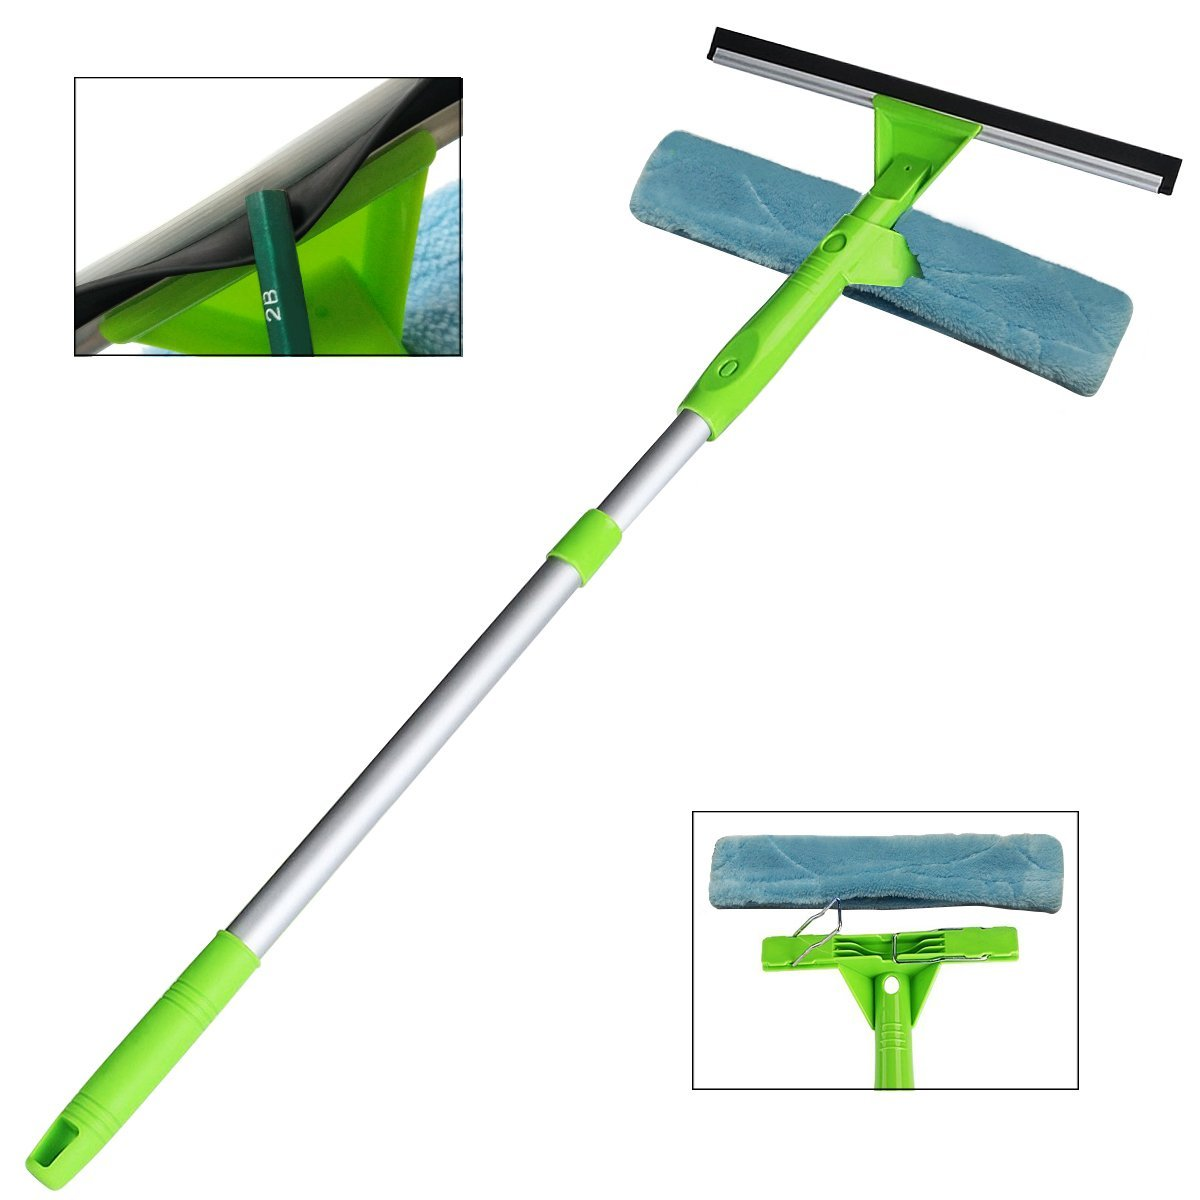 ITTAHO Window Squeegee Cleaner 3 in 1 Kit, Detachable Microfiber Pad and Squeegee Scrubber Can Used Separately with Aluminum Alloy Extension Pole